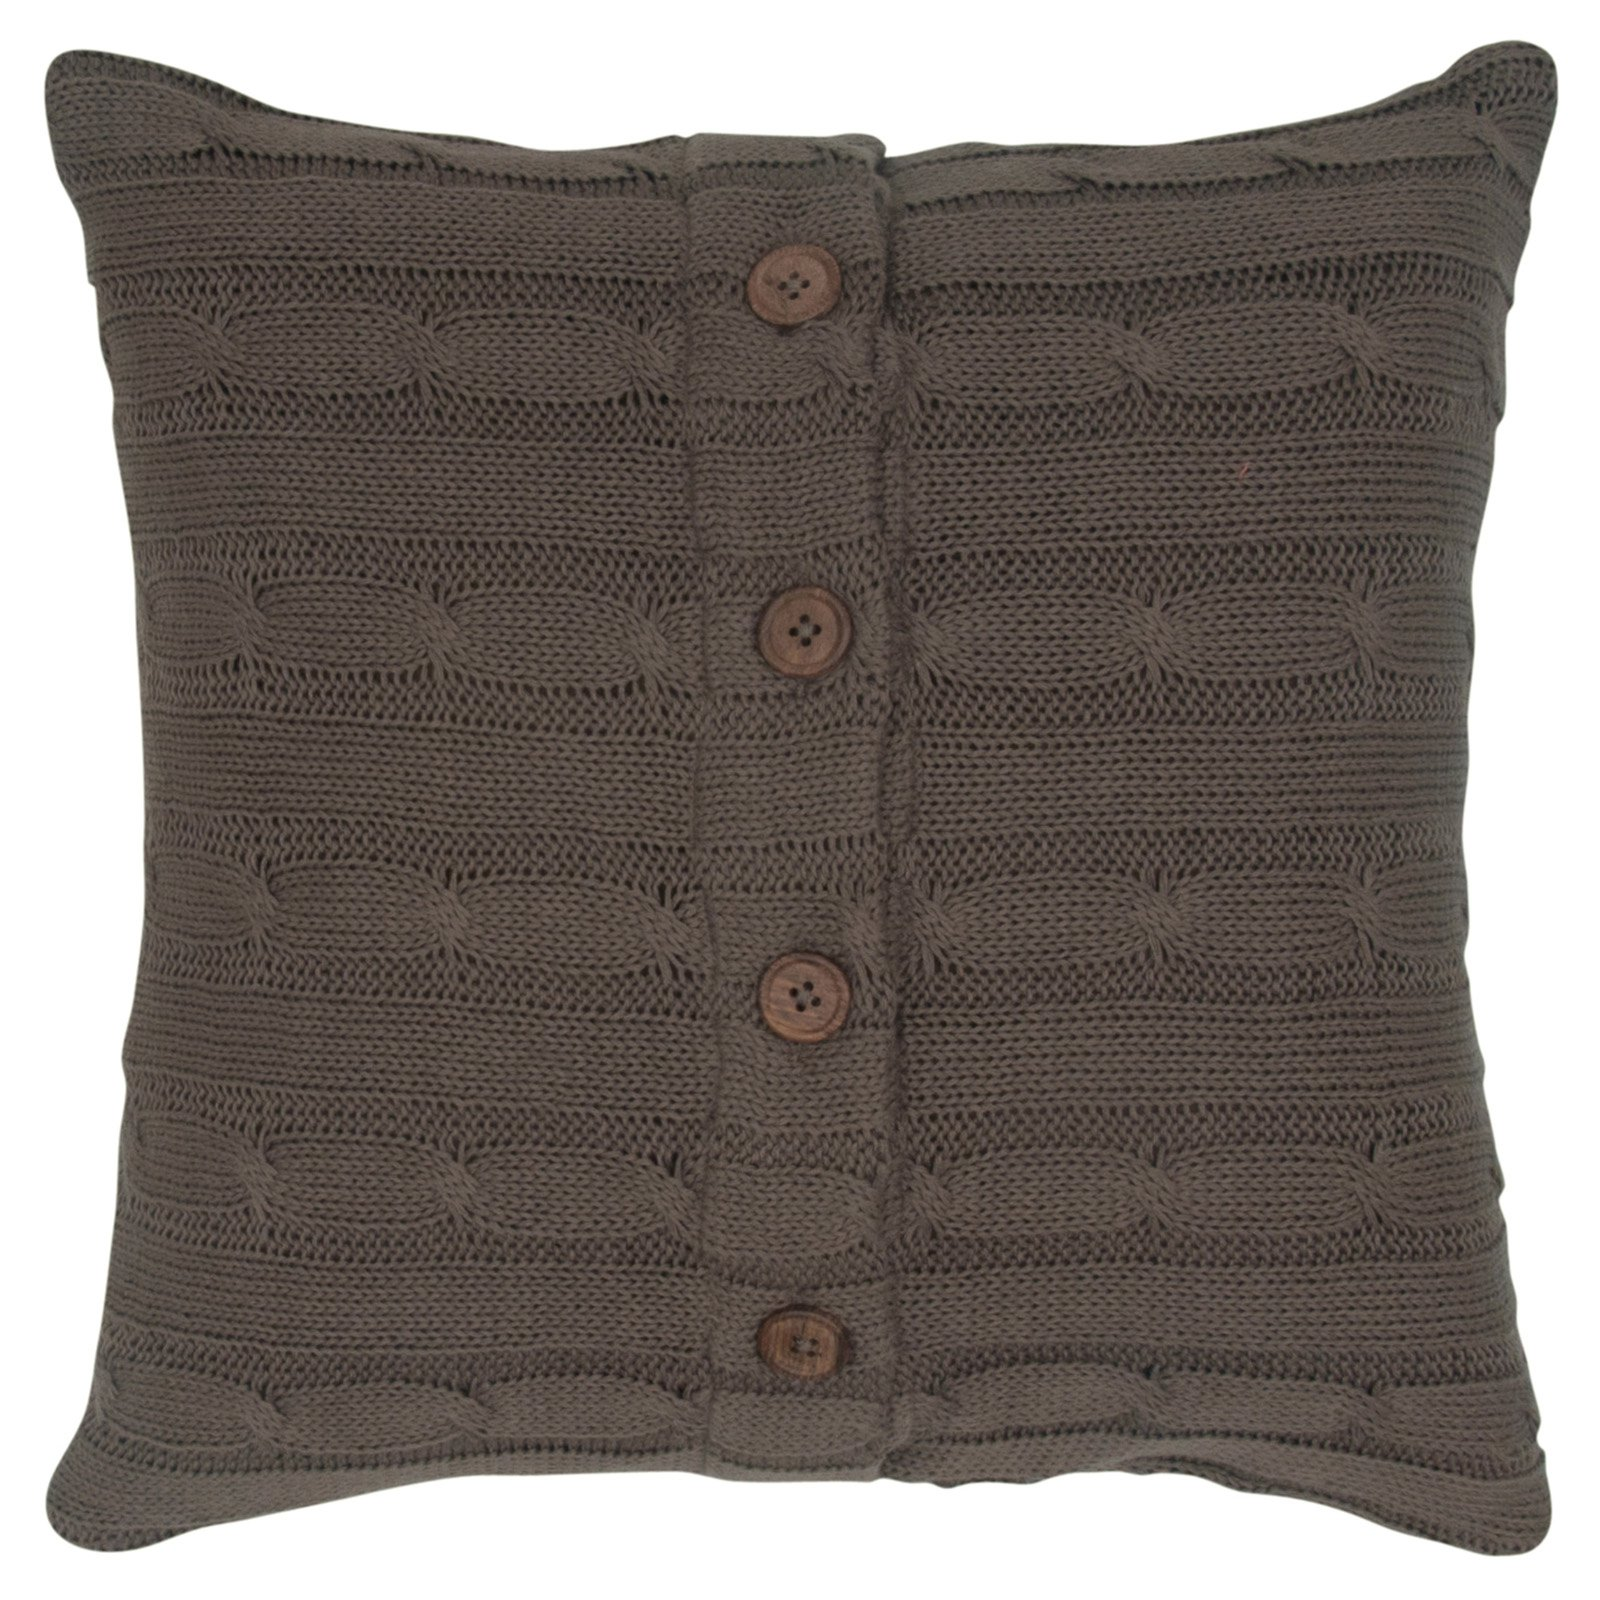 "Rizzy Home Cable Knit Buttoned Back Cotton Decorative Throw Pillow, 18"" x 18"", Mocha"